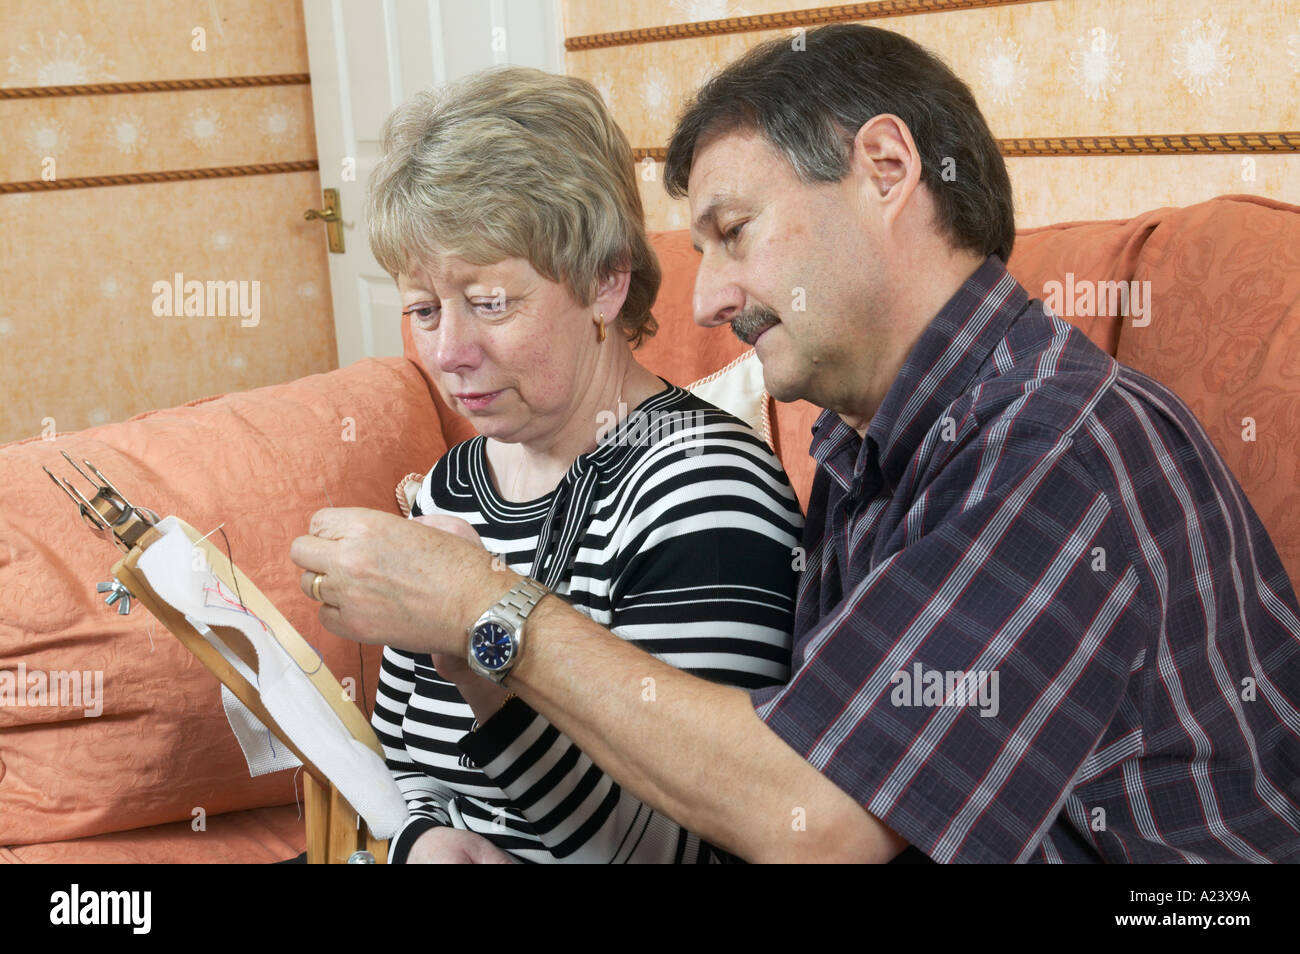 husband helping his wife with cross stitch after suffering a stroke - Stock Image